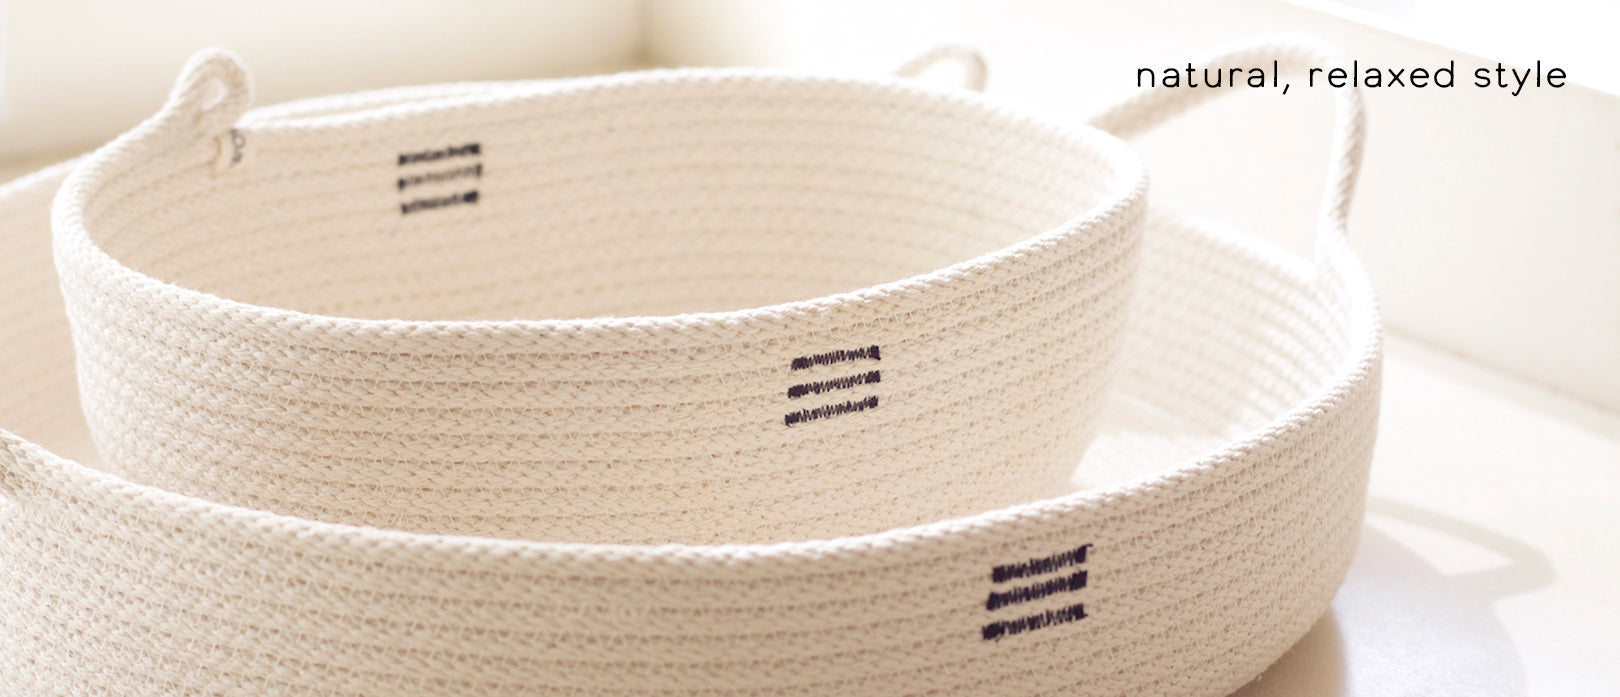 Handmade Woven Grey cotton rope storage baskets for kitchen, bathroom or home. No plastic storage. Beautiful craftsmanship with natural, rustic look let you experience the costal-living style at home. Bread baskets catch-all baskets and planter baskets.